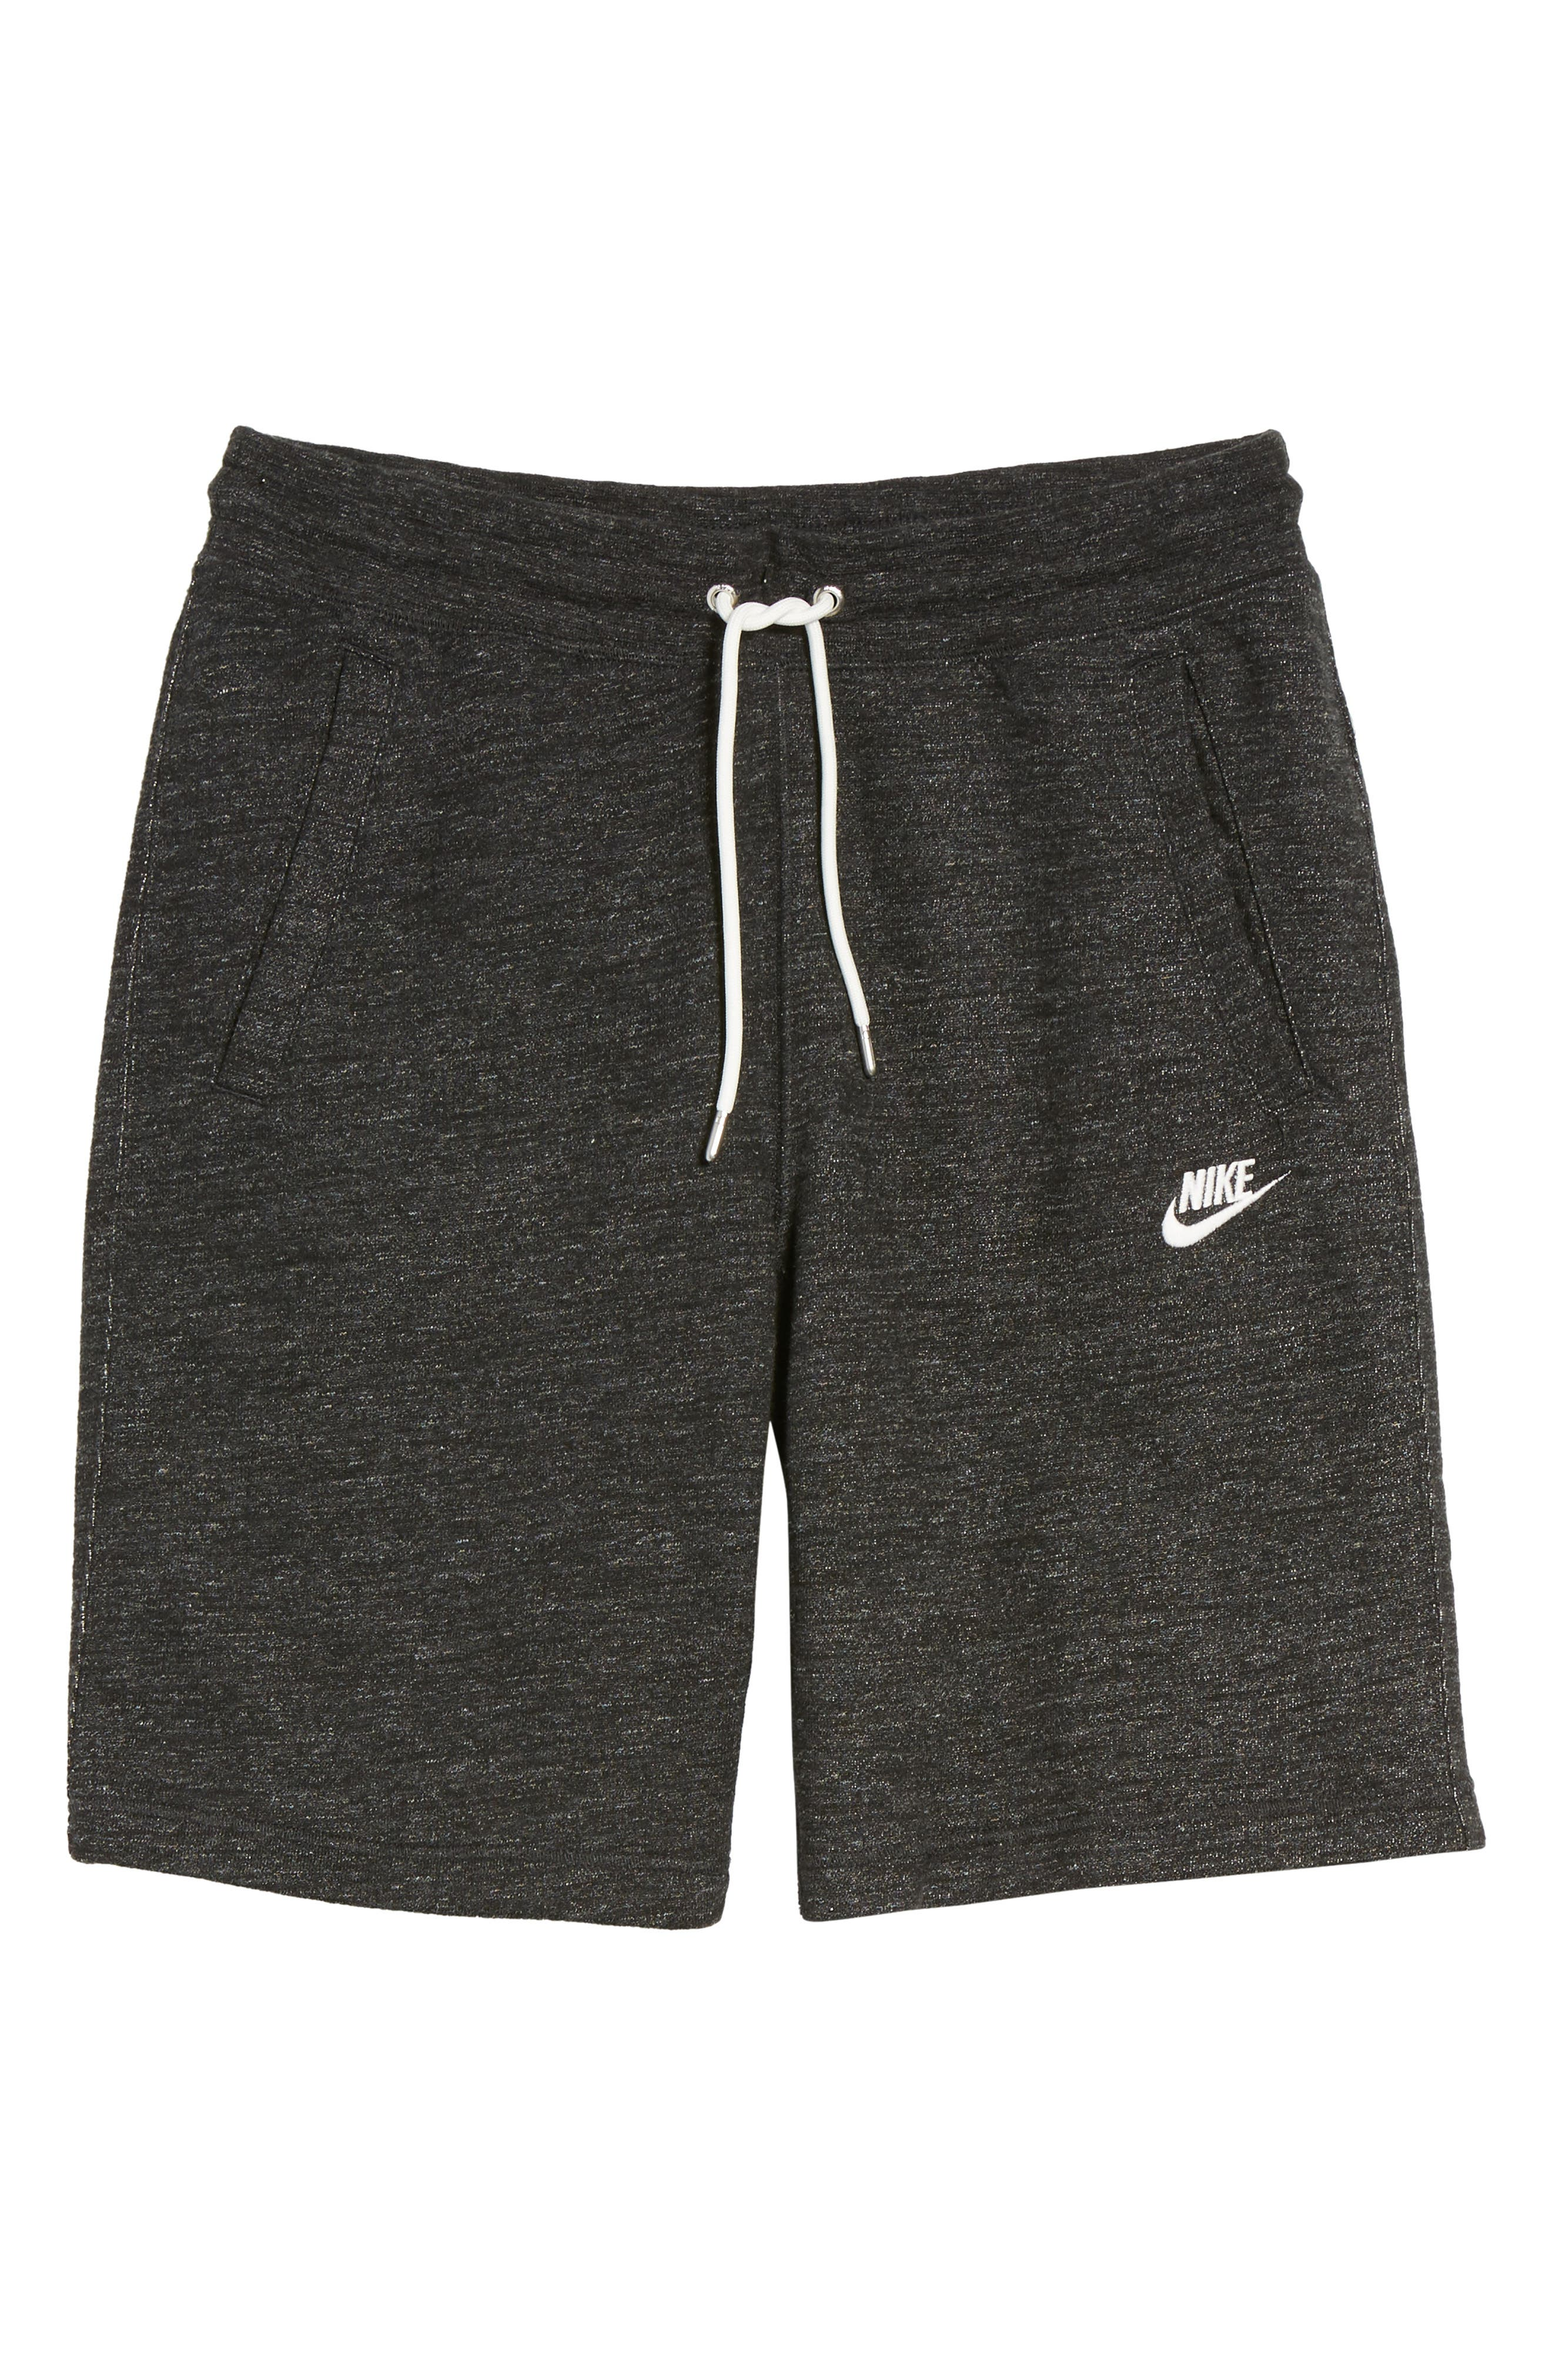 Legacy Knit Shorts,                             Alternate thumbnail 6, color,                             002